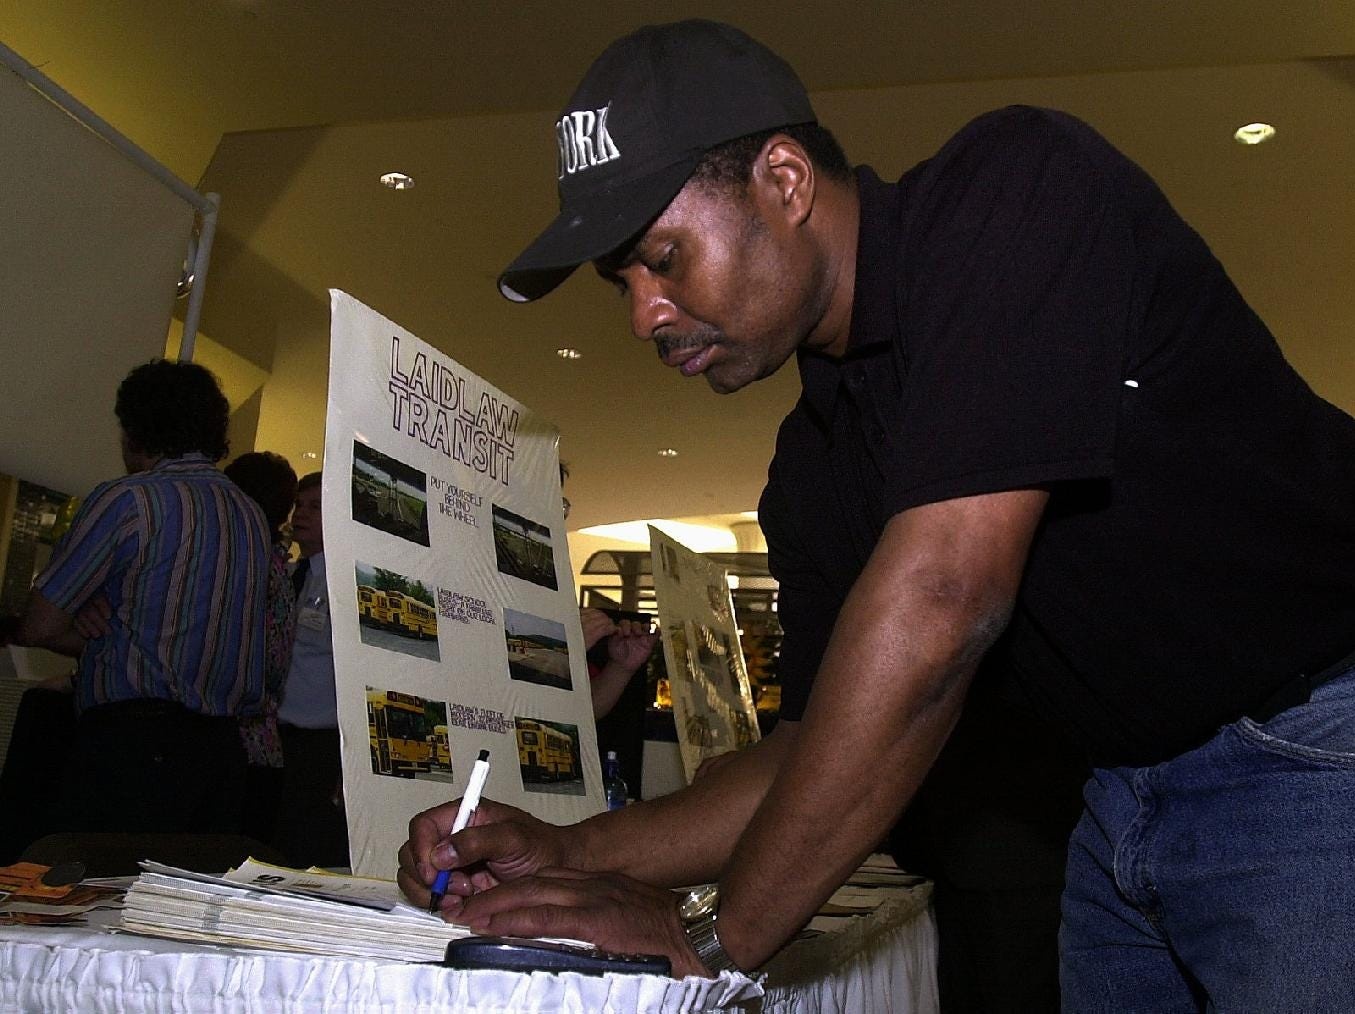 Broome Community Collage student Dennis Cooper of Binghamton, fills out a application for Laidlaw Transit took advantage of the Greater Binghamton Area Job Fair on June 10, 2003 at the Oakdale Mall to look for a part-time job.